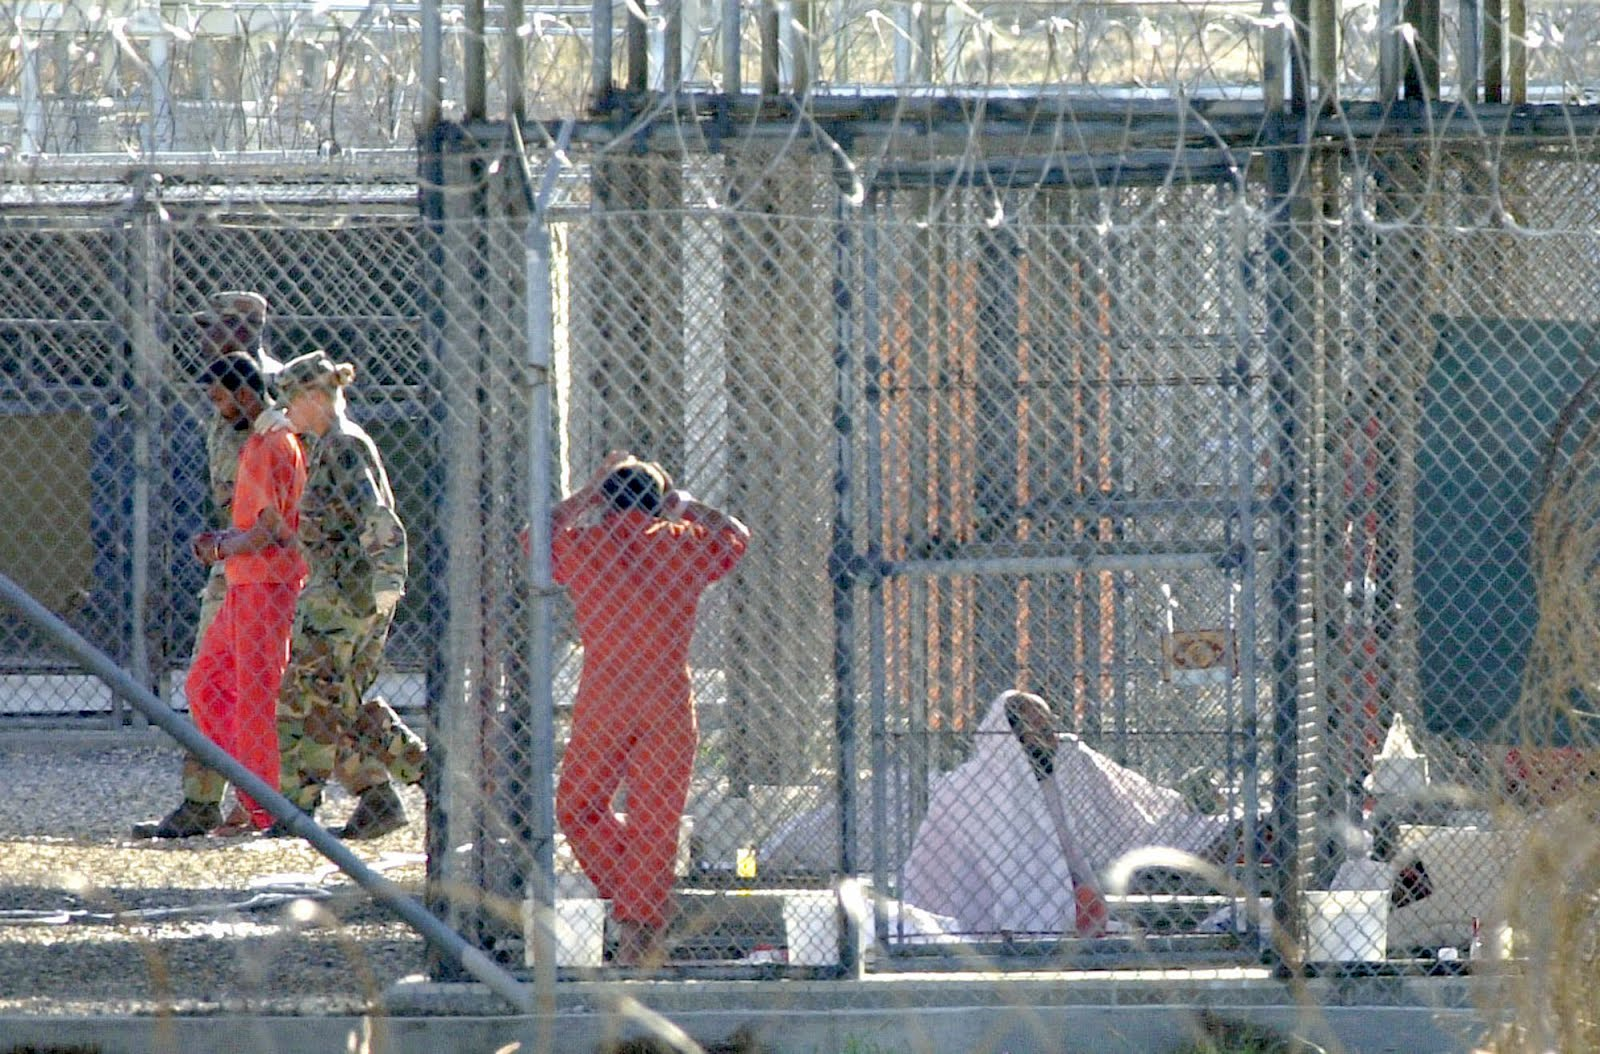 This Week in Guantánamo: 2015 and 2004 Thumbnail Image